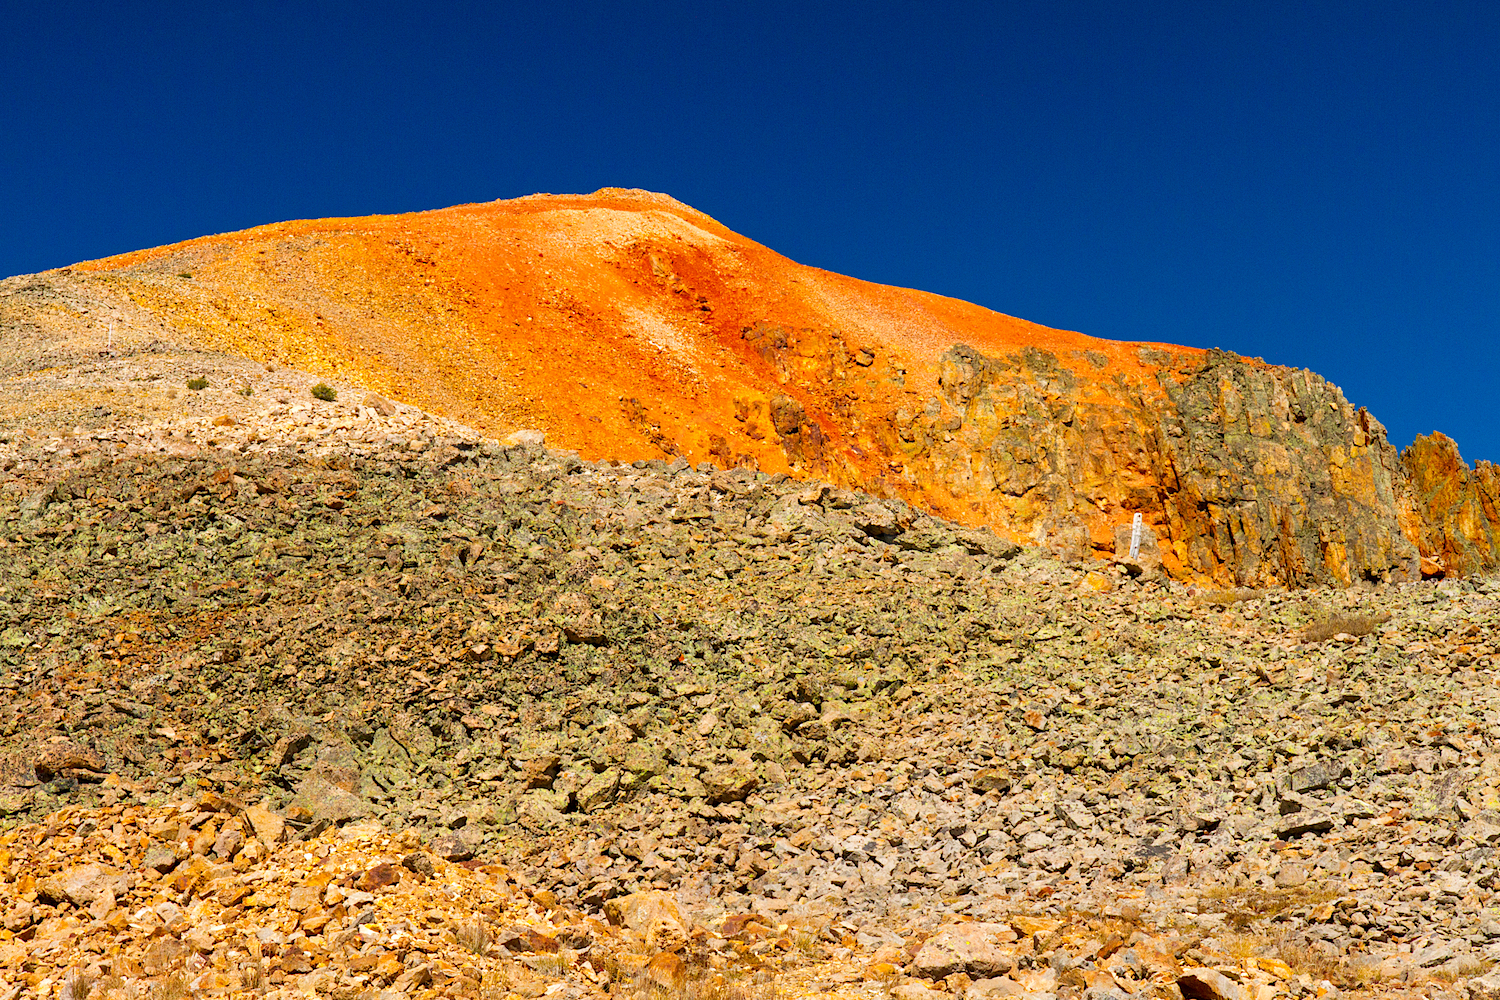 Red Mountain #3, Image # 6112